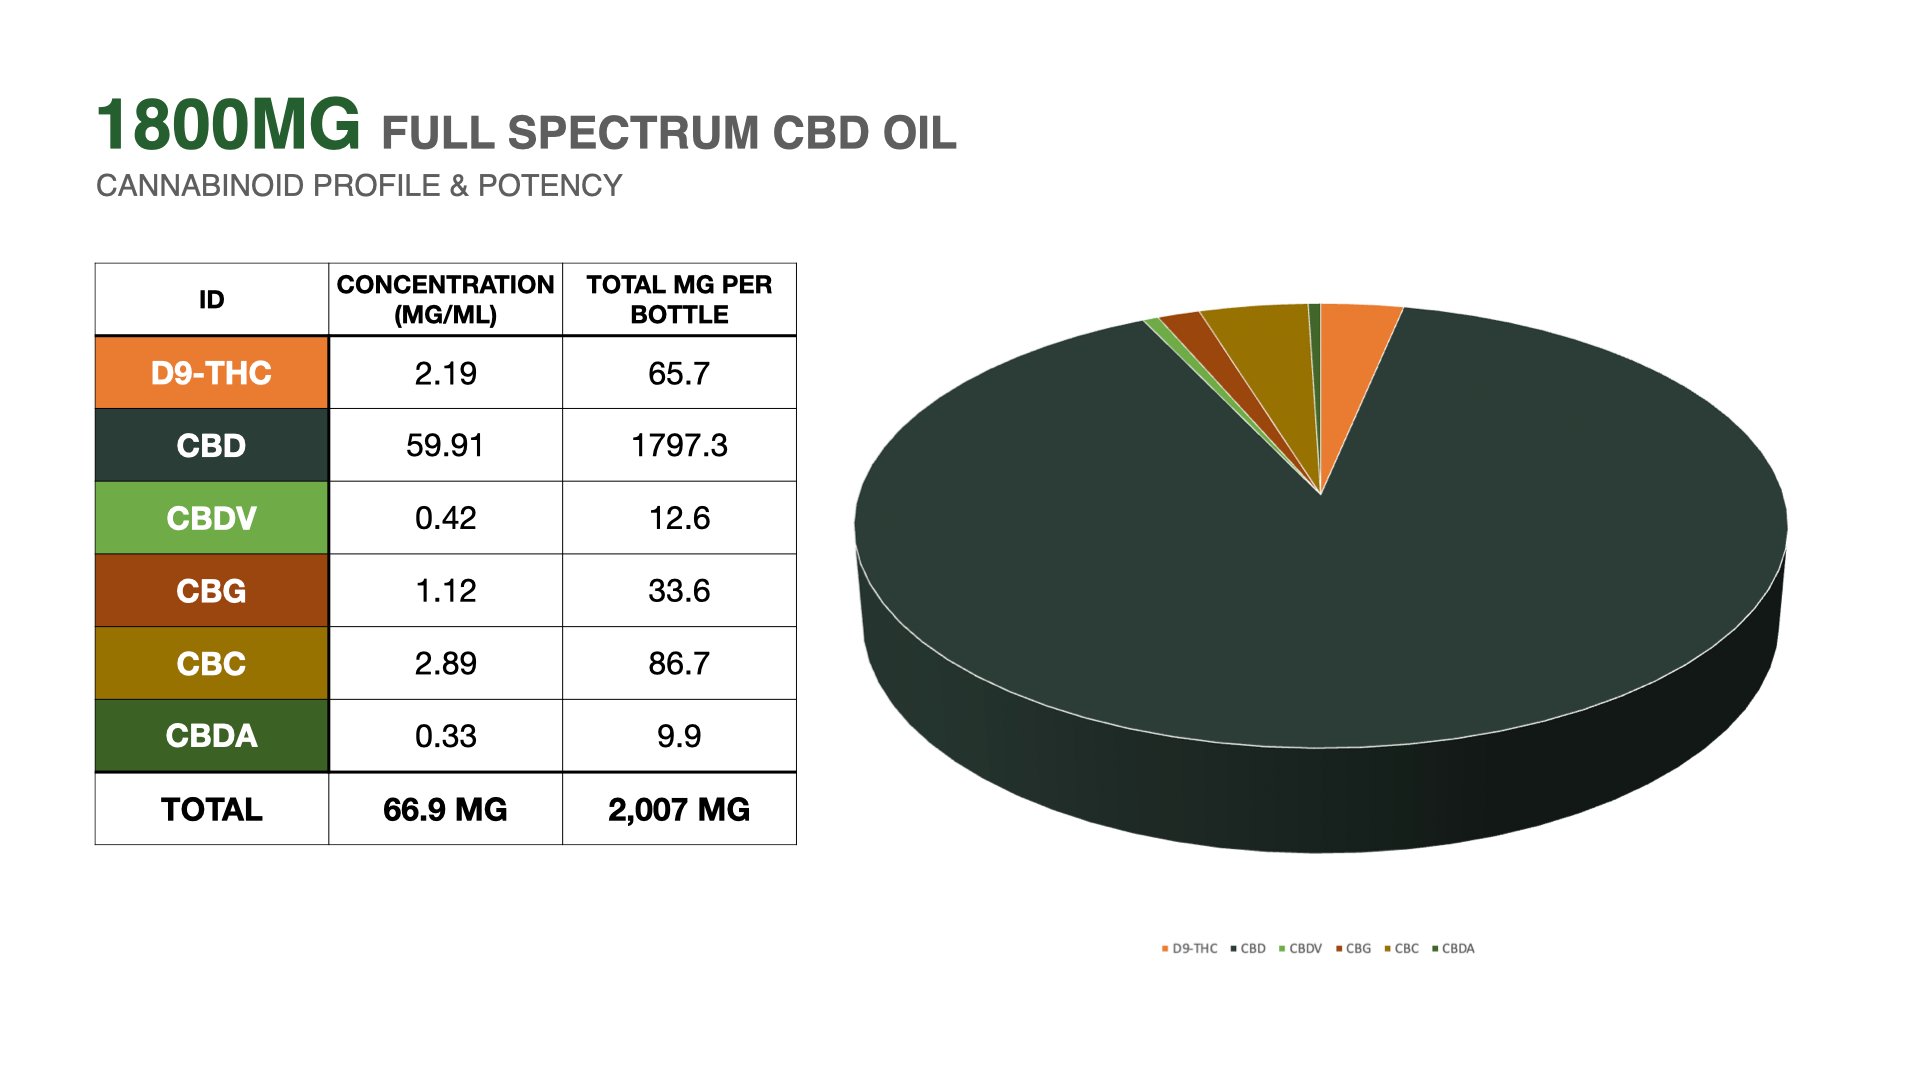 1800mg cbd oill 3rd party lab results